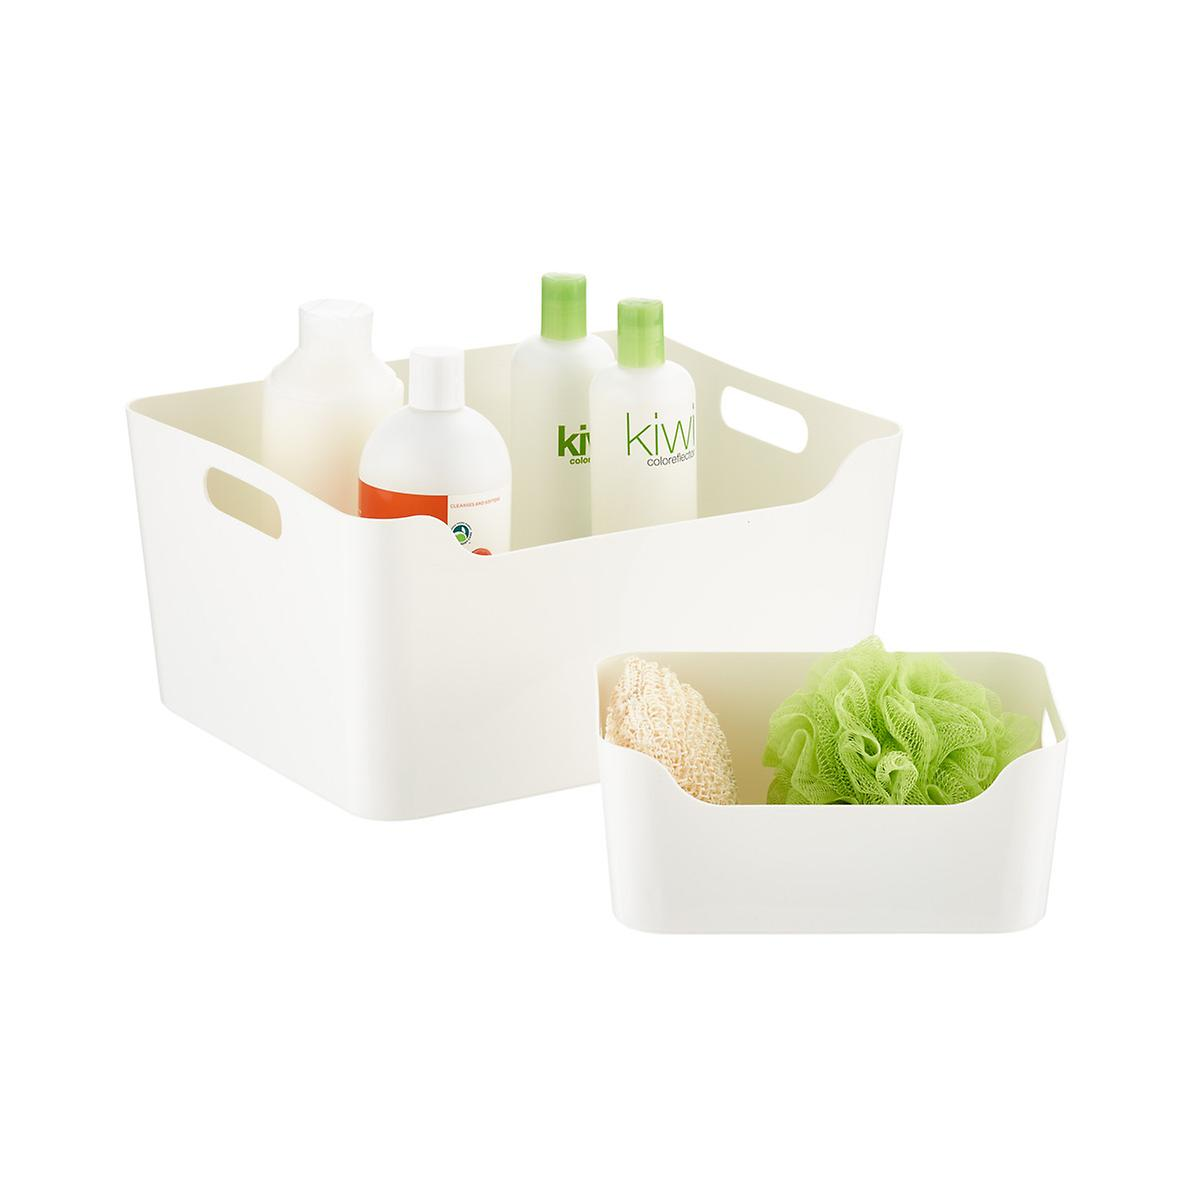 c1494203b4cb White Plastic Storage Bins with Handles